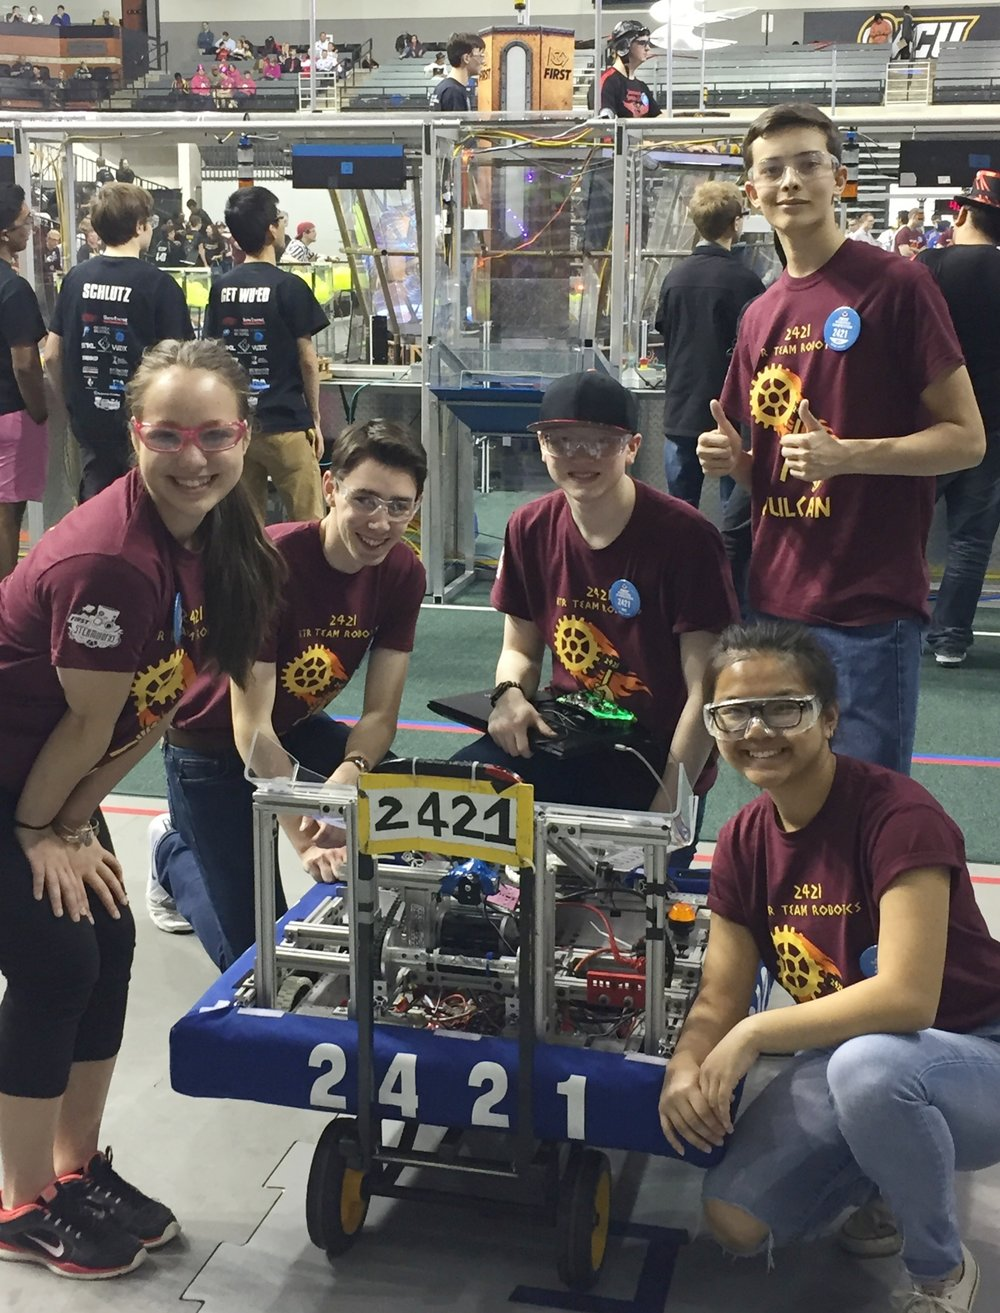 Ready to take the field at the FIRST 2017 Chesapeake District Championship, which was held April 5-8 at Virginia Commonwealth University, Richmond, VA. The top 12 ranked teams were eligible to attend the World Championship—and 2421 RTR Team Robotics got the 12th slot! The 2017 team was sponsored by NASA, Boeing, Federal Acquisition Strategies, BAE Systems, Springfield Plaza LLC, SoftTech, and the Air Force Officers' Spouses Club of Washington, DC.